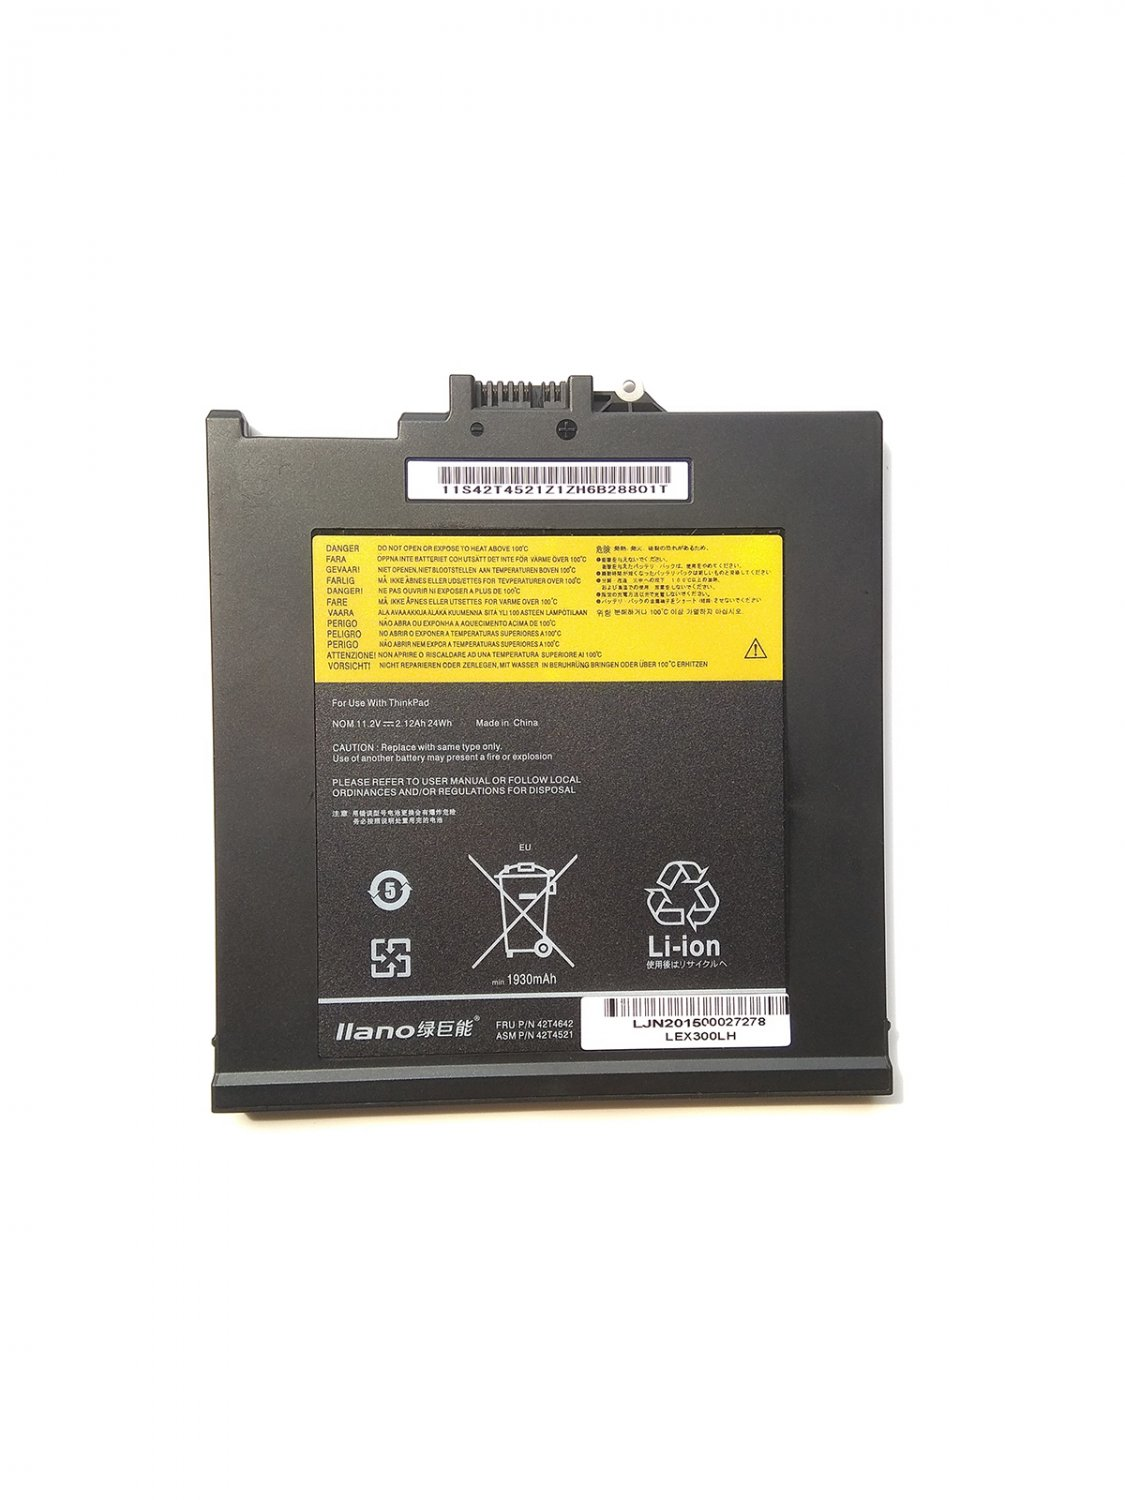 Lenovo 42T4521 42T4642 42T4520 43R1966 UltraBay Battery Replacement